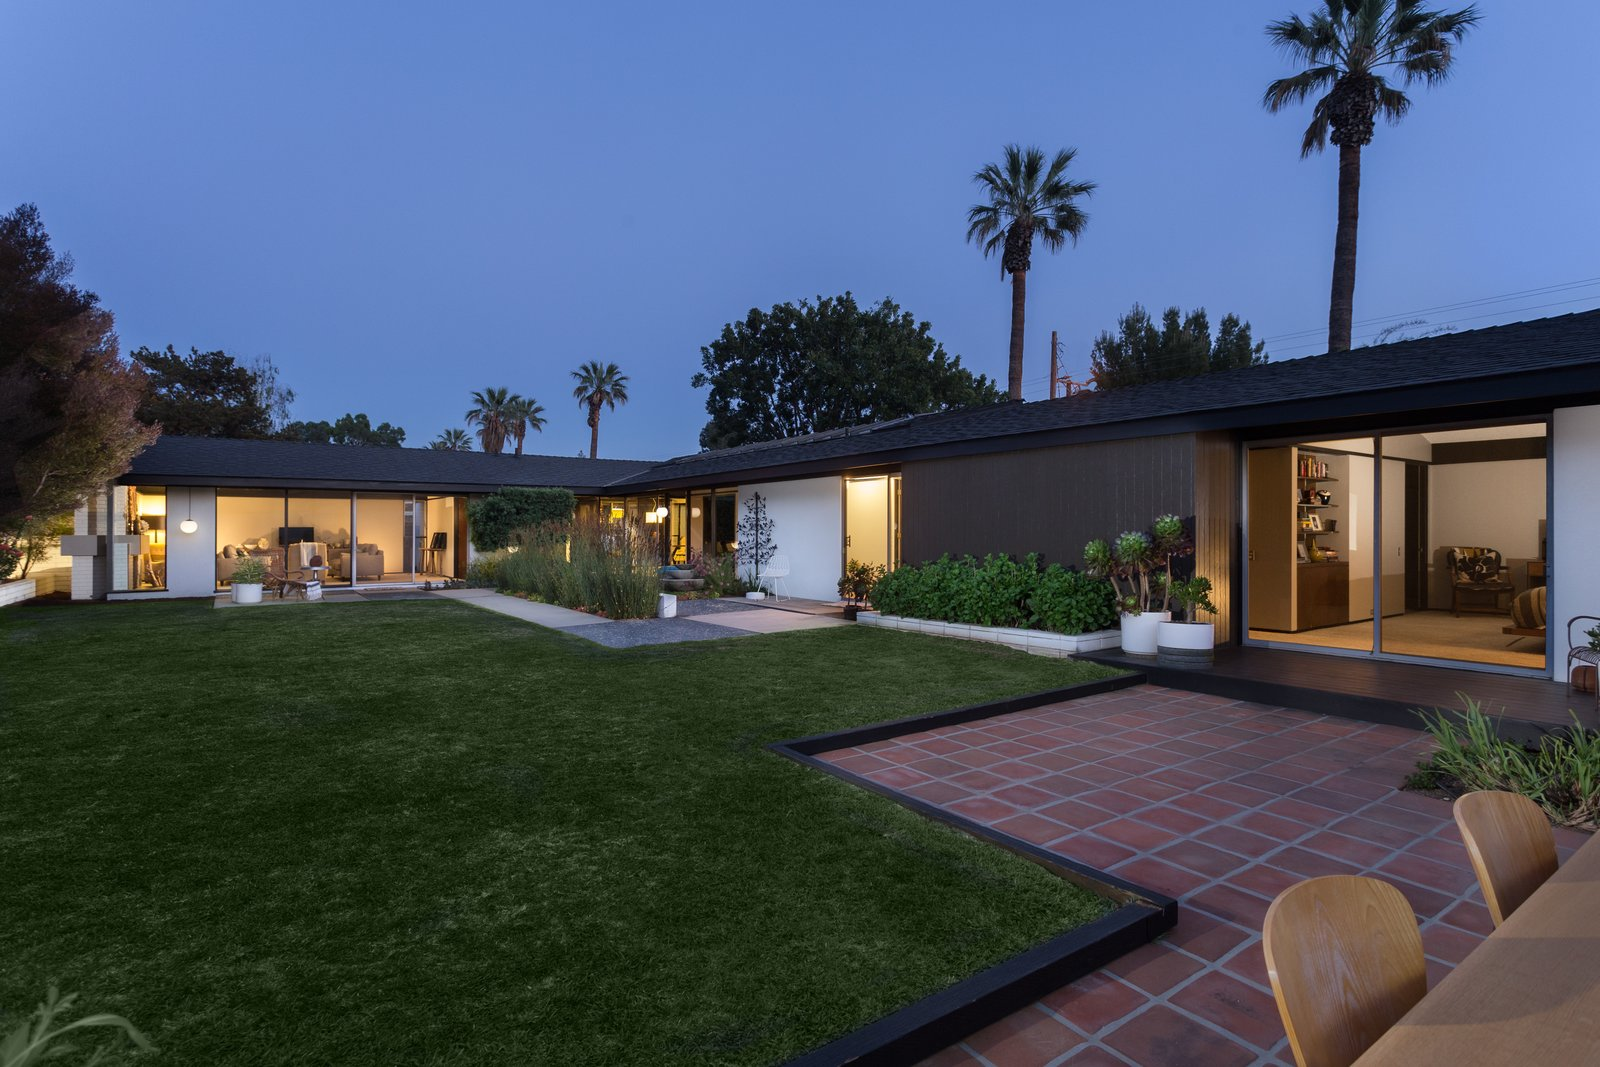 Outdoor, Back Yard, and Grass  Photo 14 of 14 in Offered at $899K, a Restored Midcentury Abode Shines in Southern California